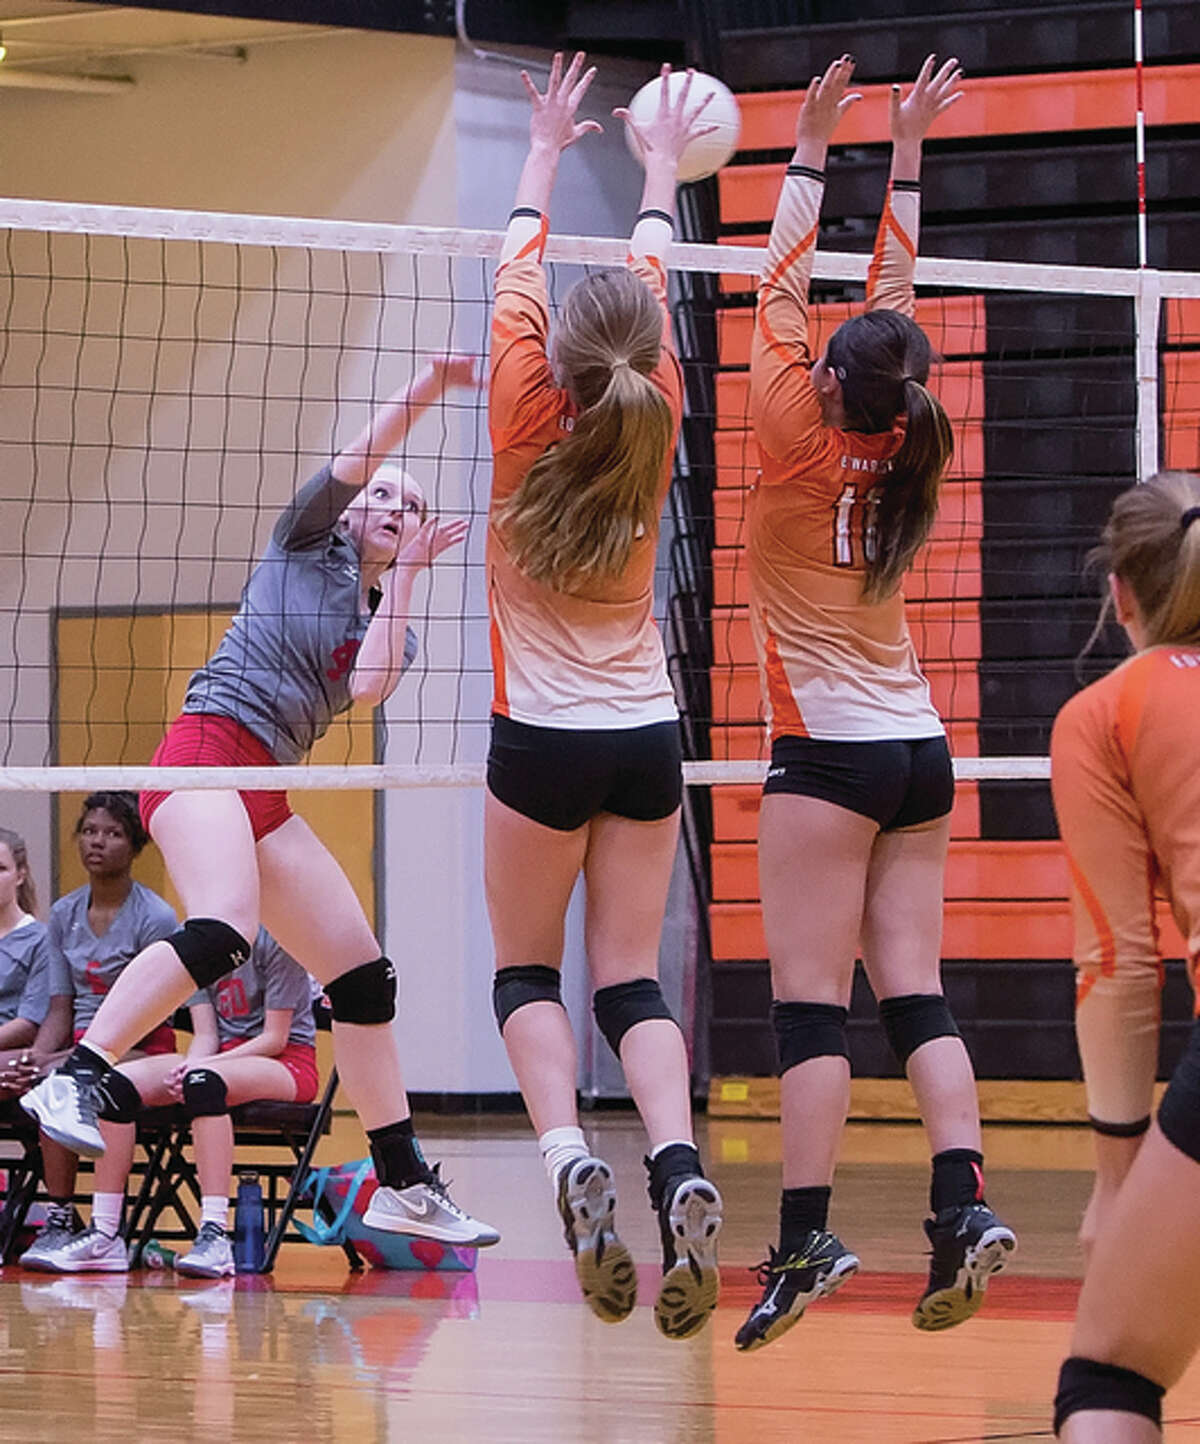 Edwardsville's Kate Martin (middle) and Corrine Timmermann (right) put up a block on the attack from Alton's Gwendolyn Hunter during the Tigers' Southwestern Conference victory Thursday night at Lucco-Jackson Gym in Edwardsville.